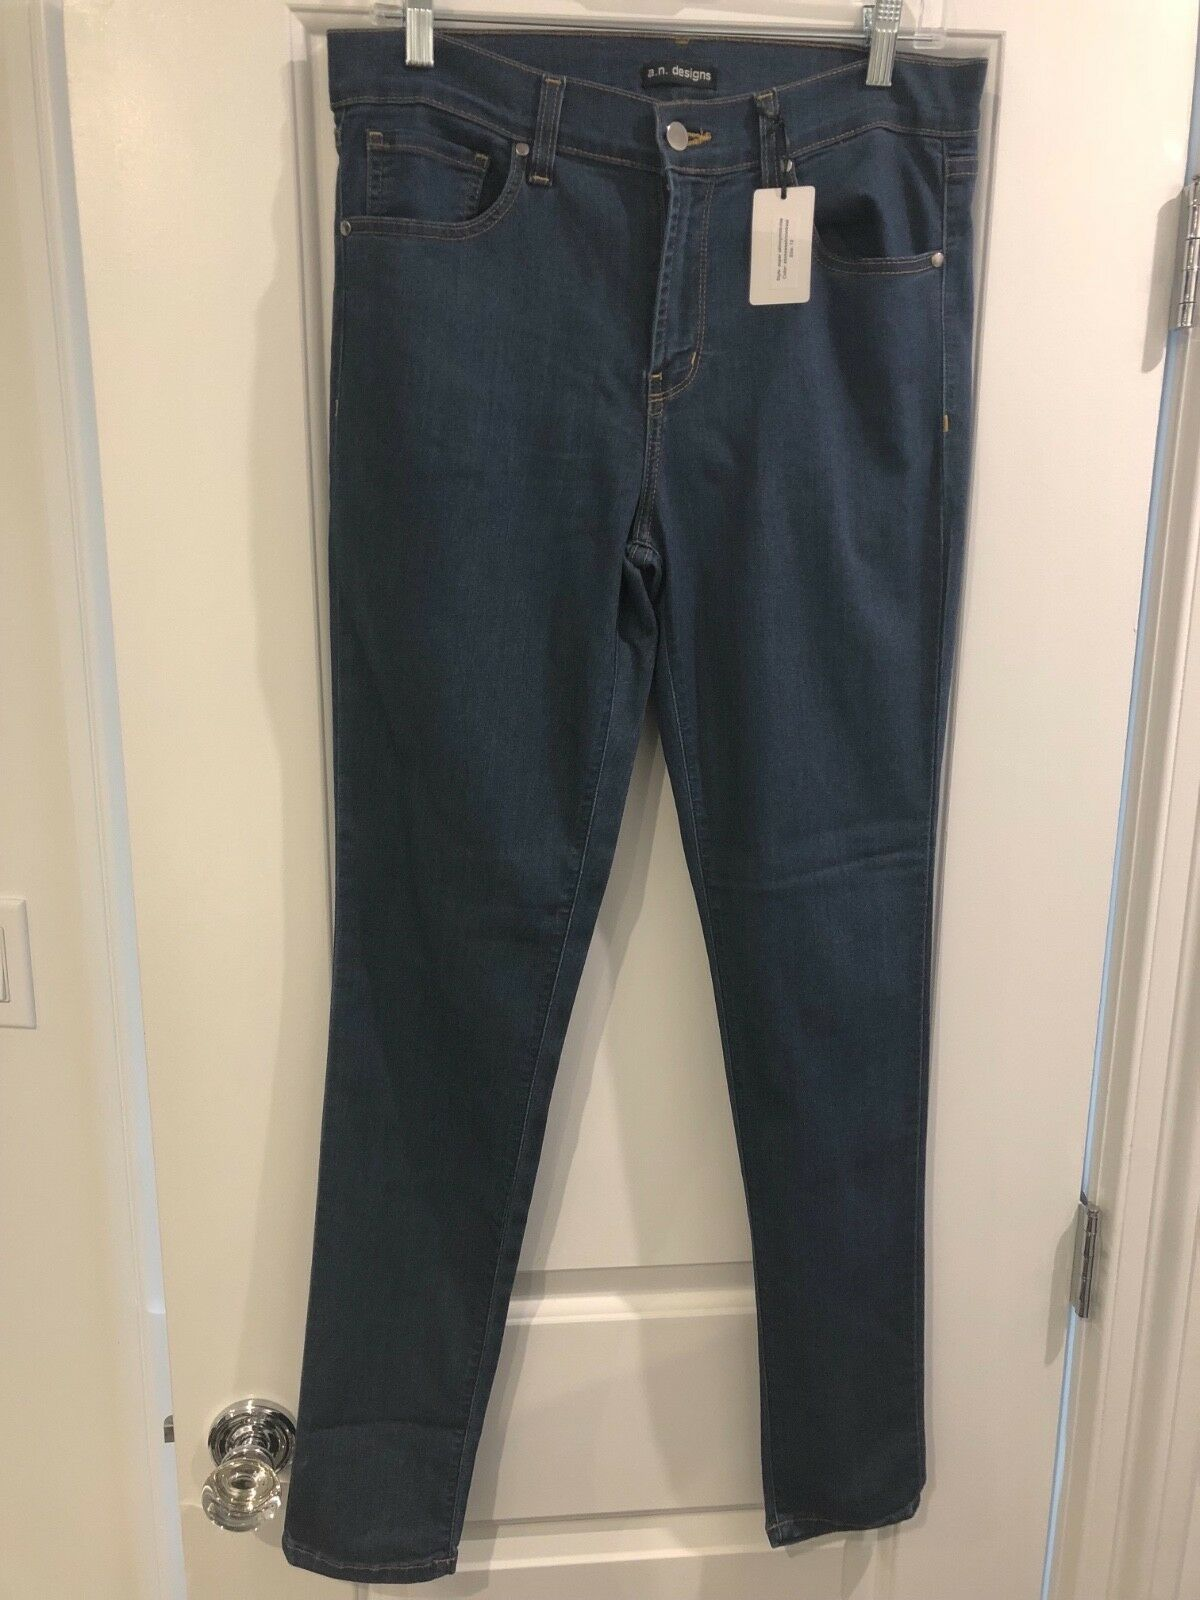 New with tags a.n. designs super skinny   mid-rise stone stretch bluee jeans 12